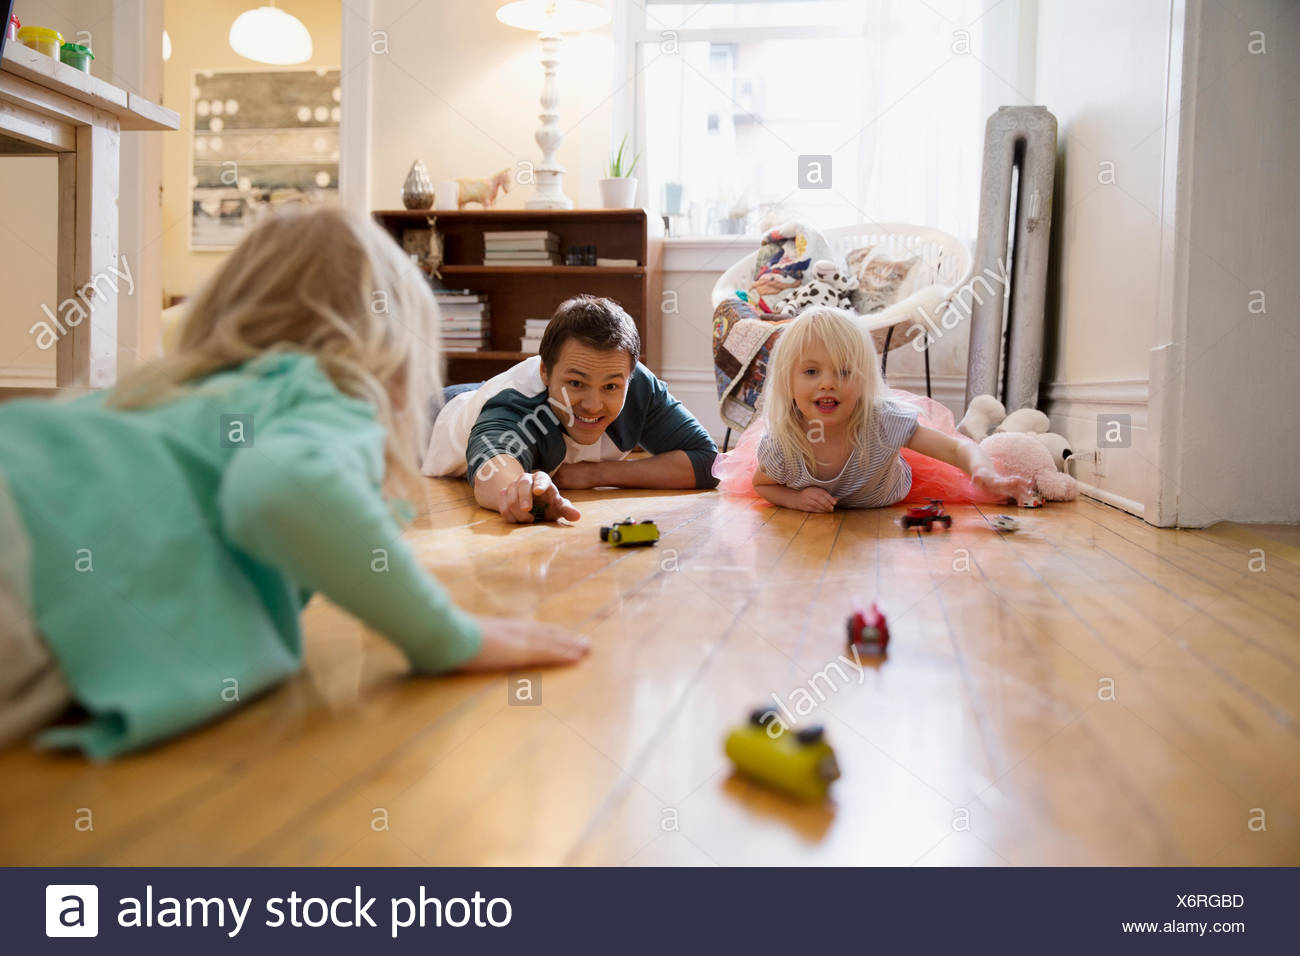 Father and daughters racing toy cars on floor - Stock Image